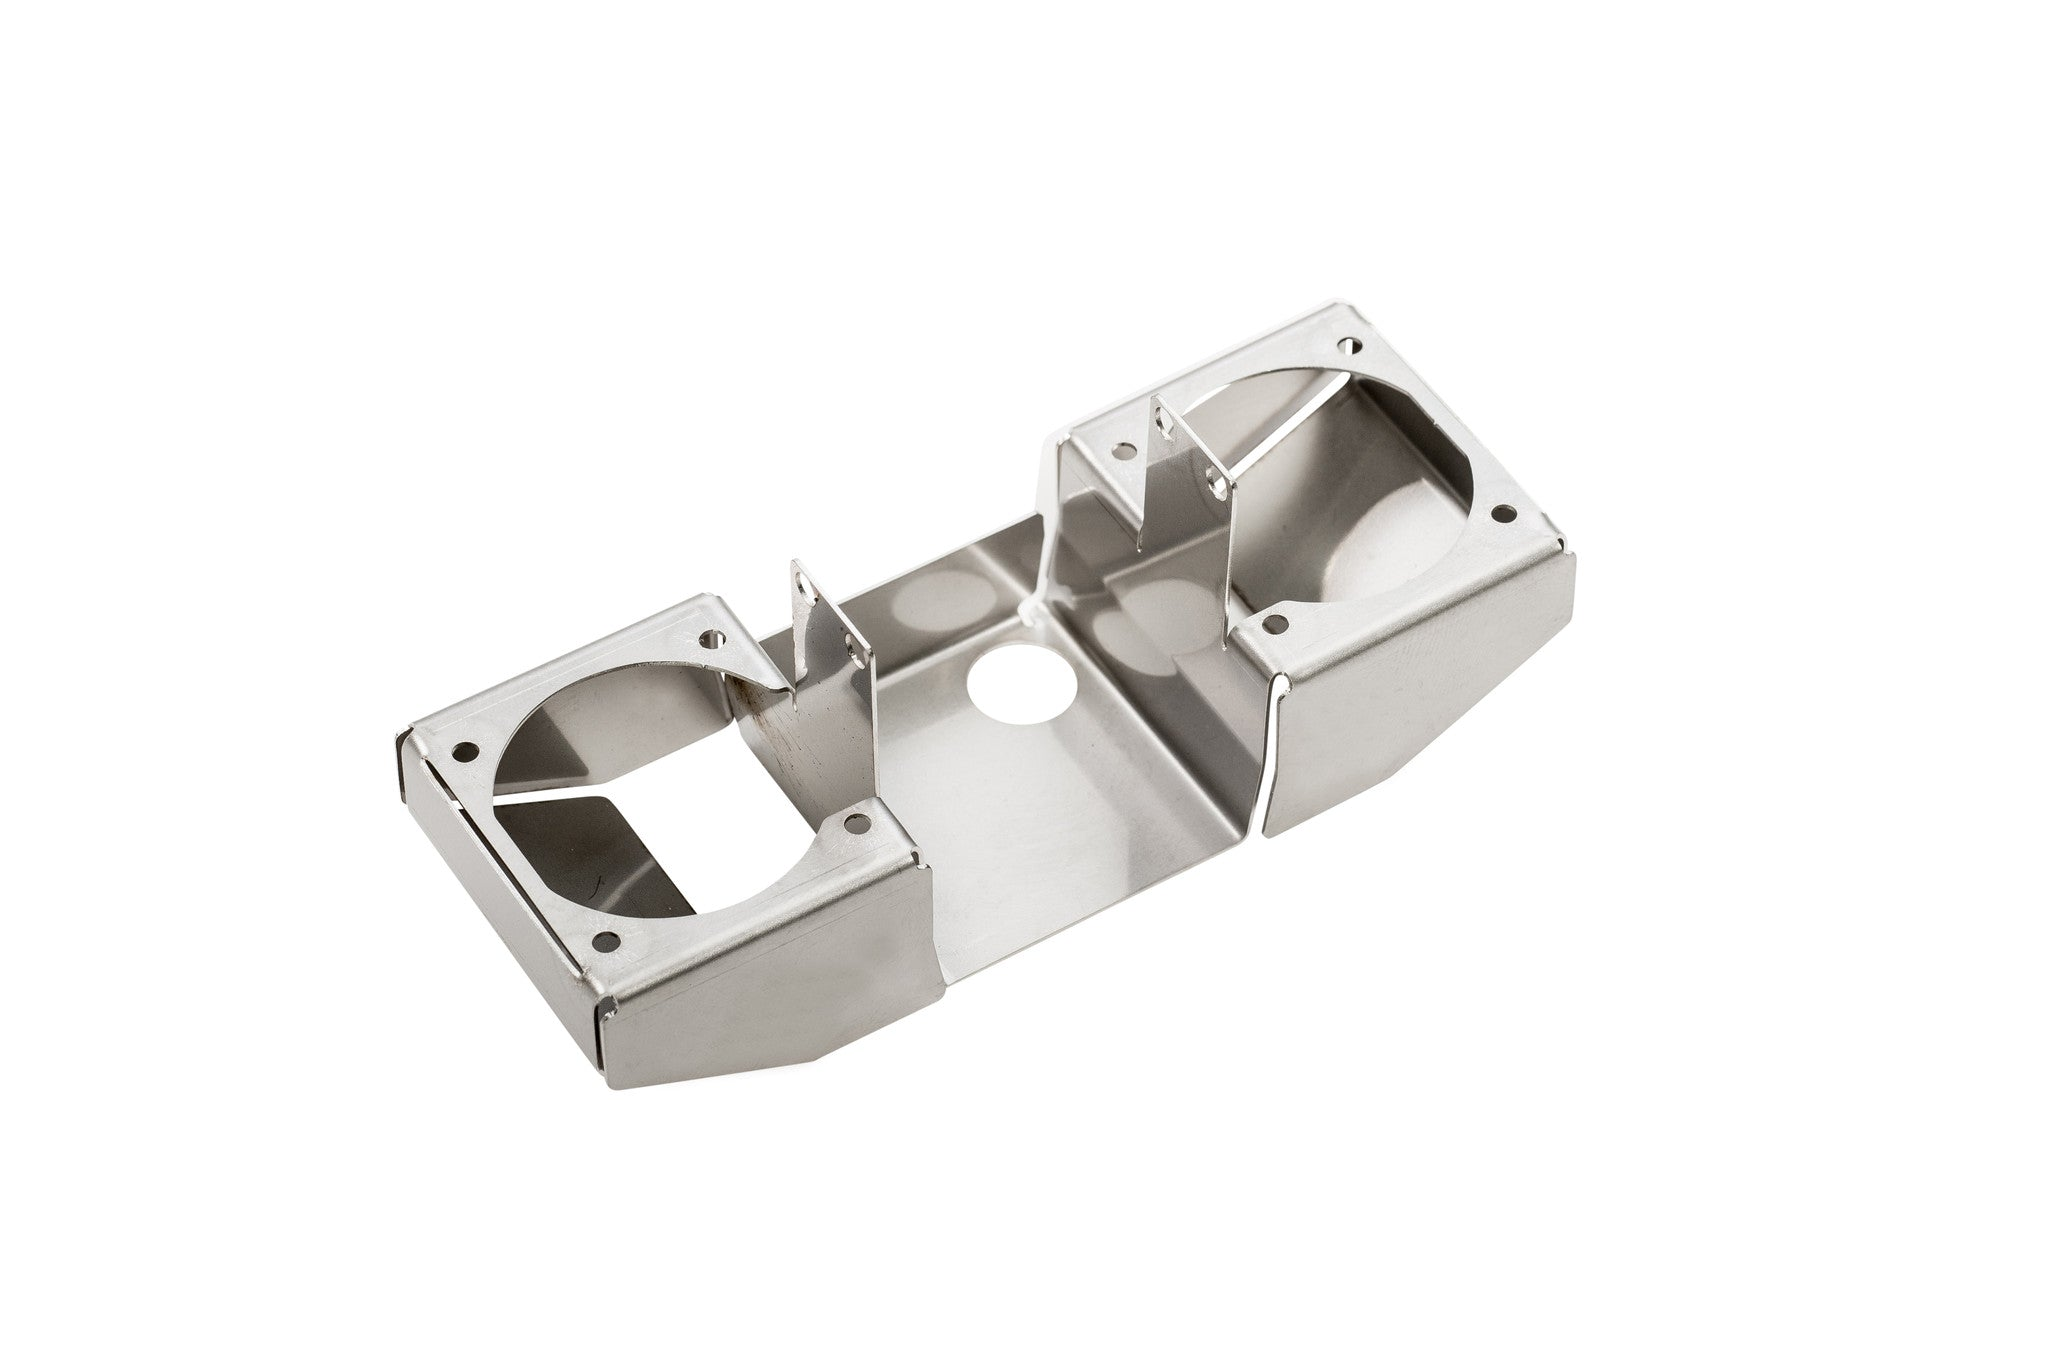 UM2+ (2284) - Dual Metal Fan Bracket